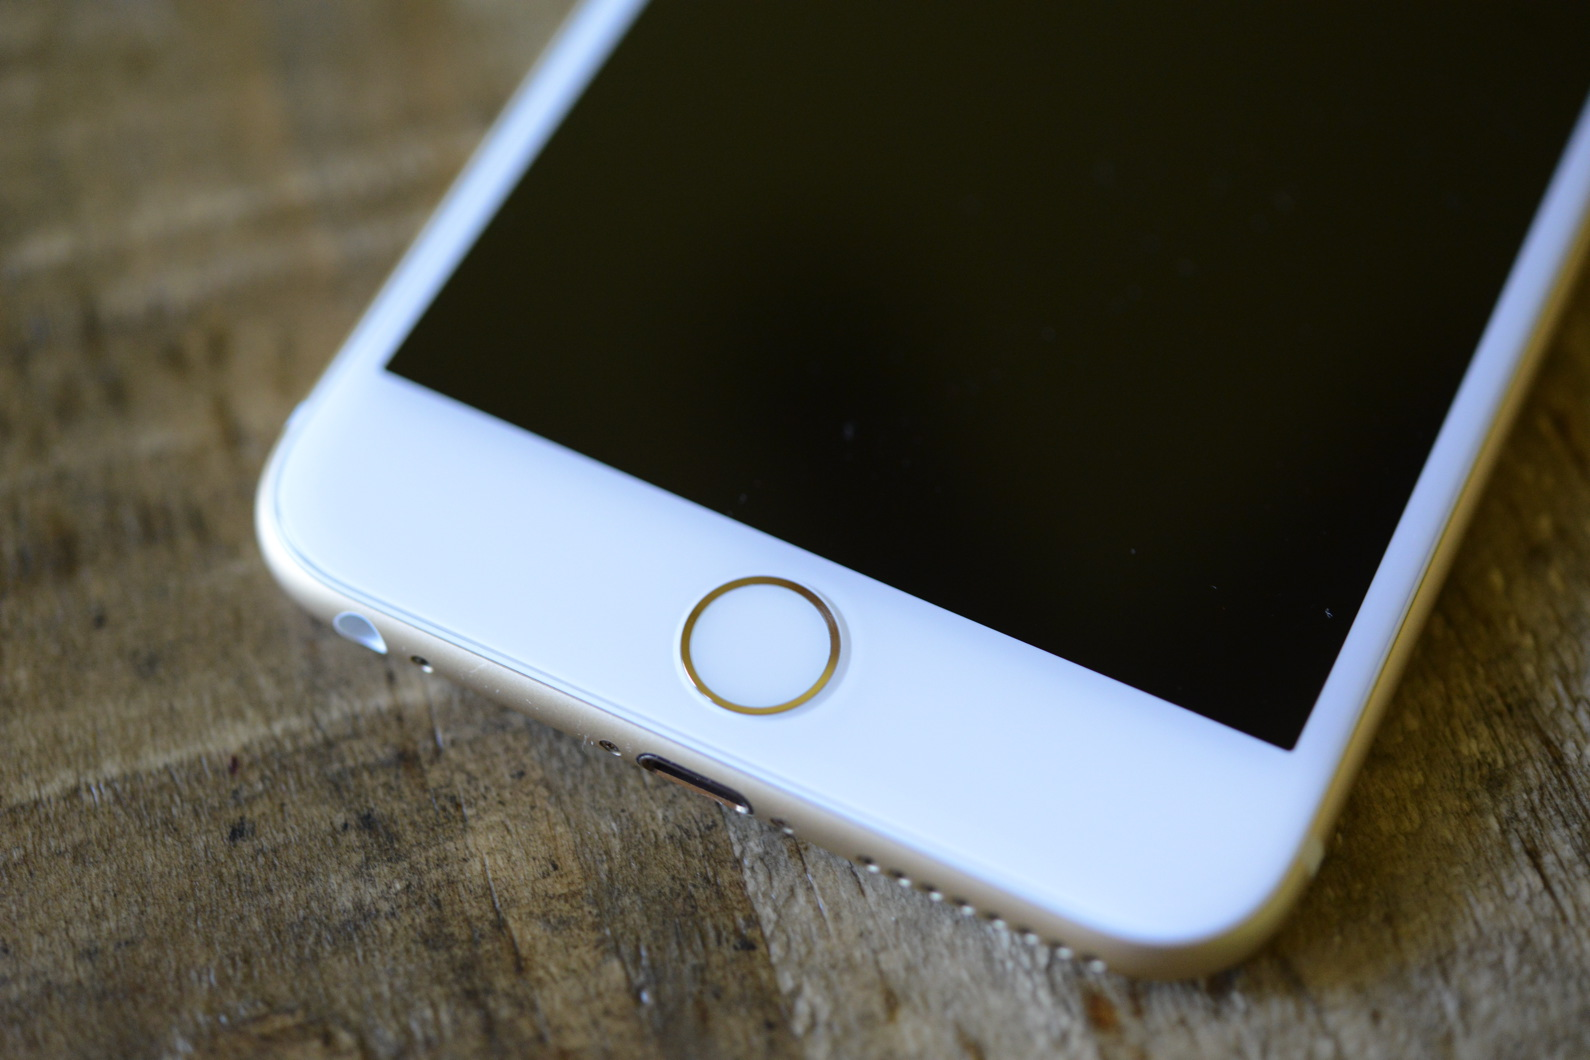 big_iphone6plus-hands-on_2693.jpg